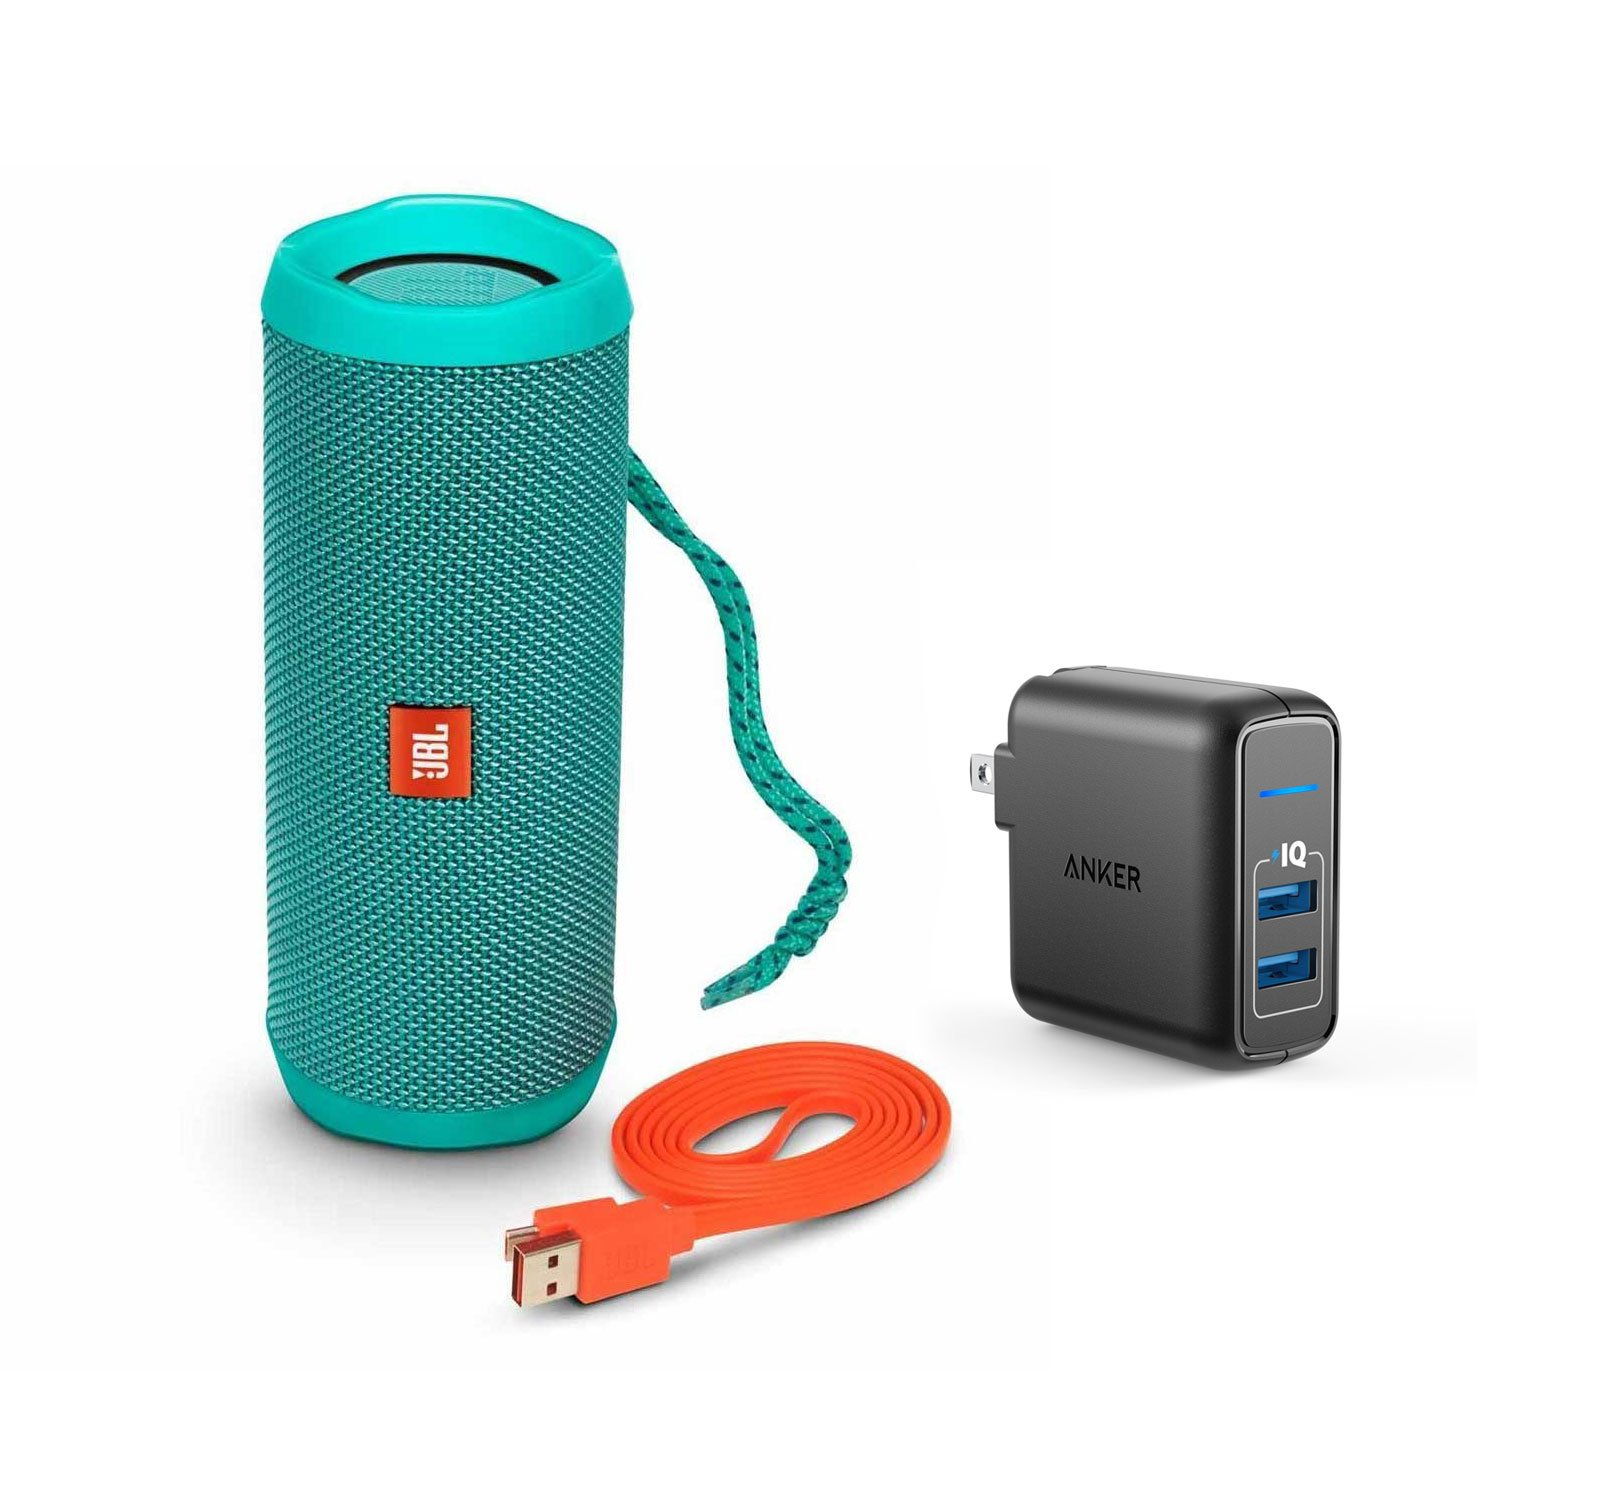 JBL Flip 4 Portable Bluetooth Wireless Speaker Bundle with Dual Port 24W USB Travel Wall Charger - Teal